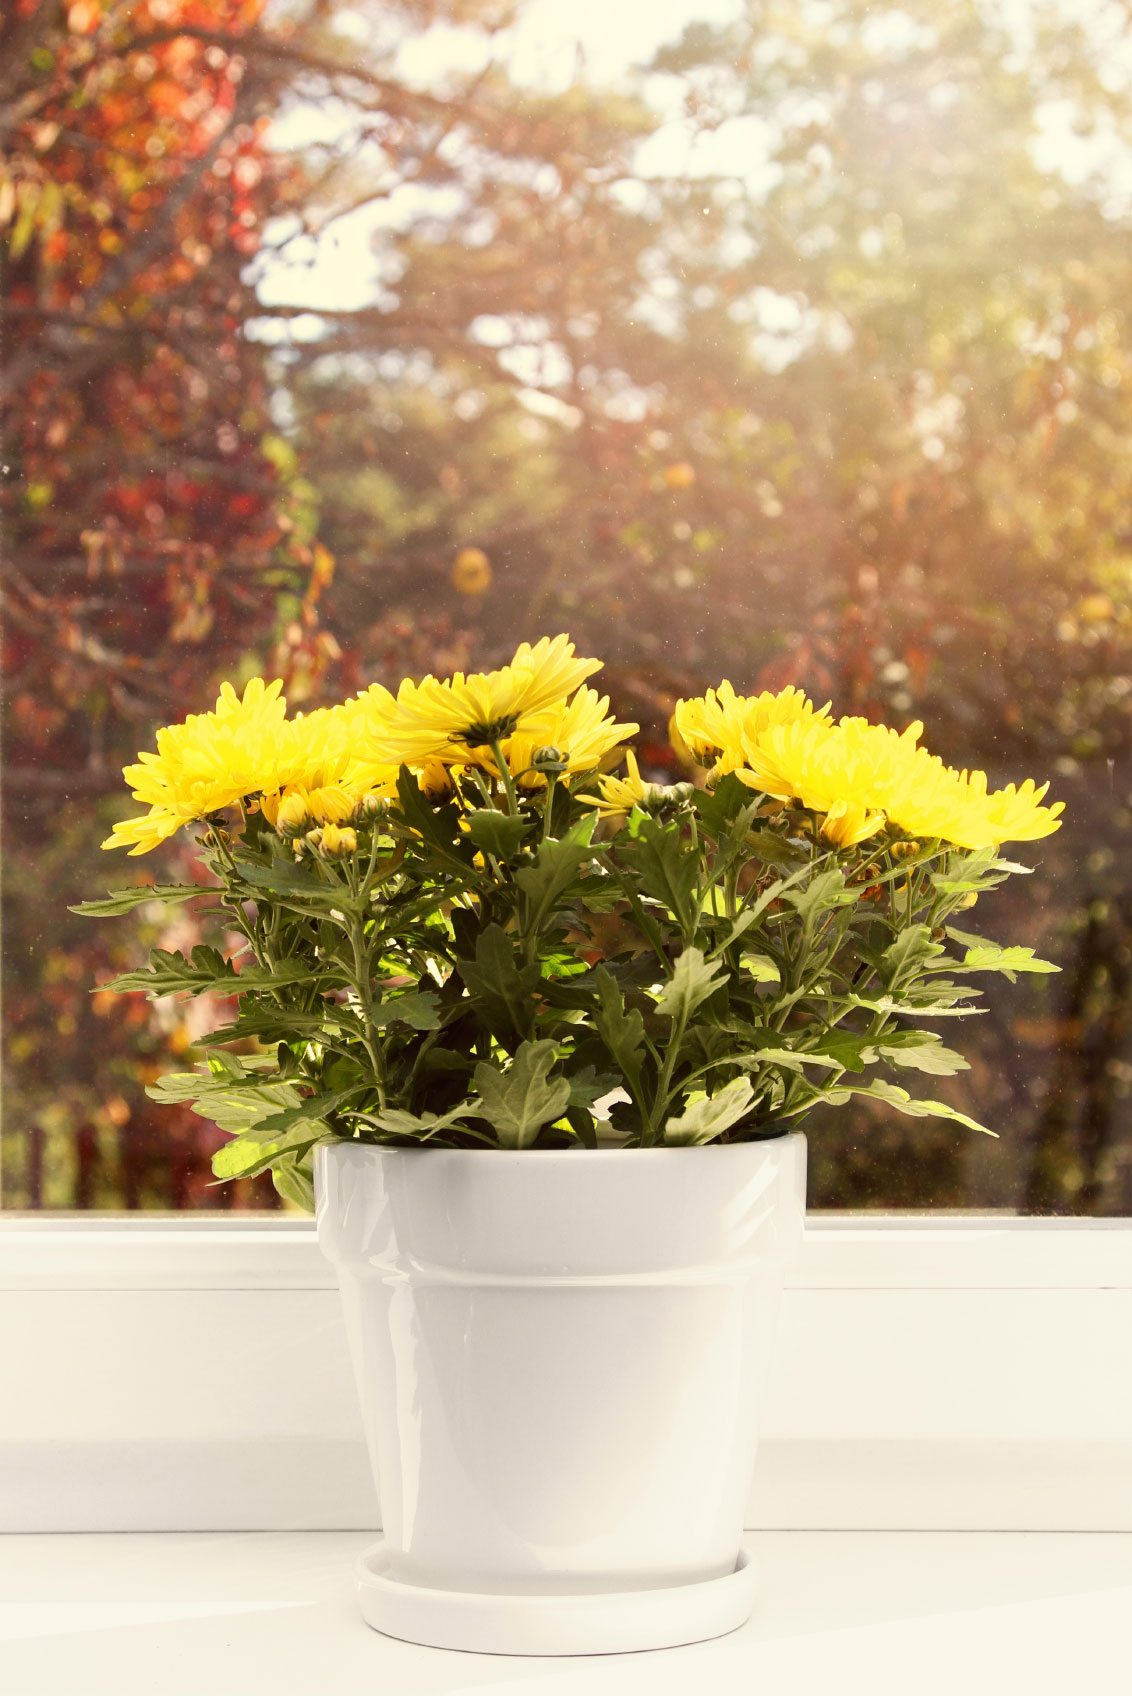 Chrysanthemum Houseplants How To Grow Mums Indoors